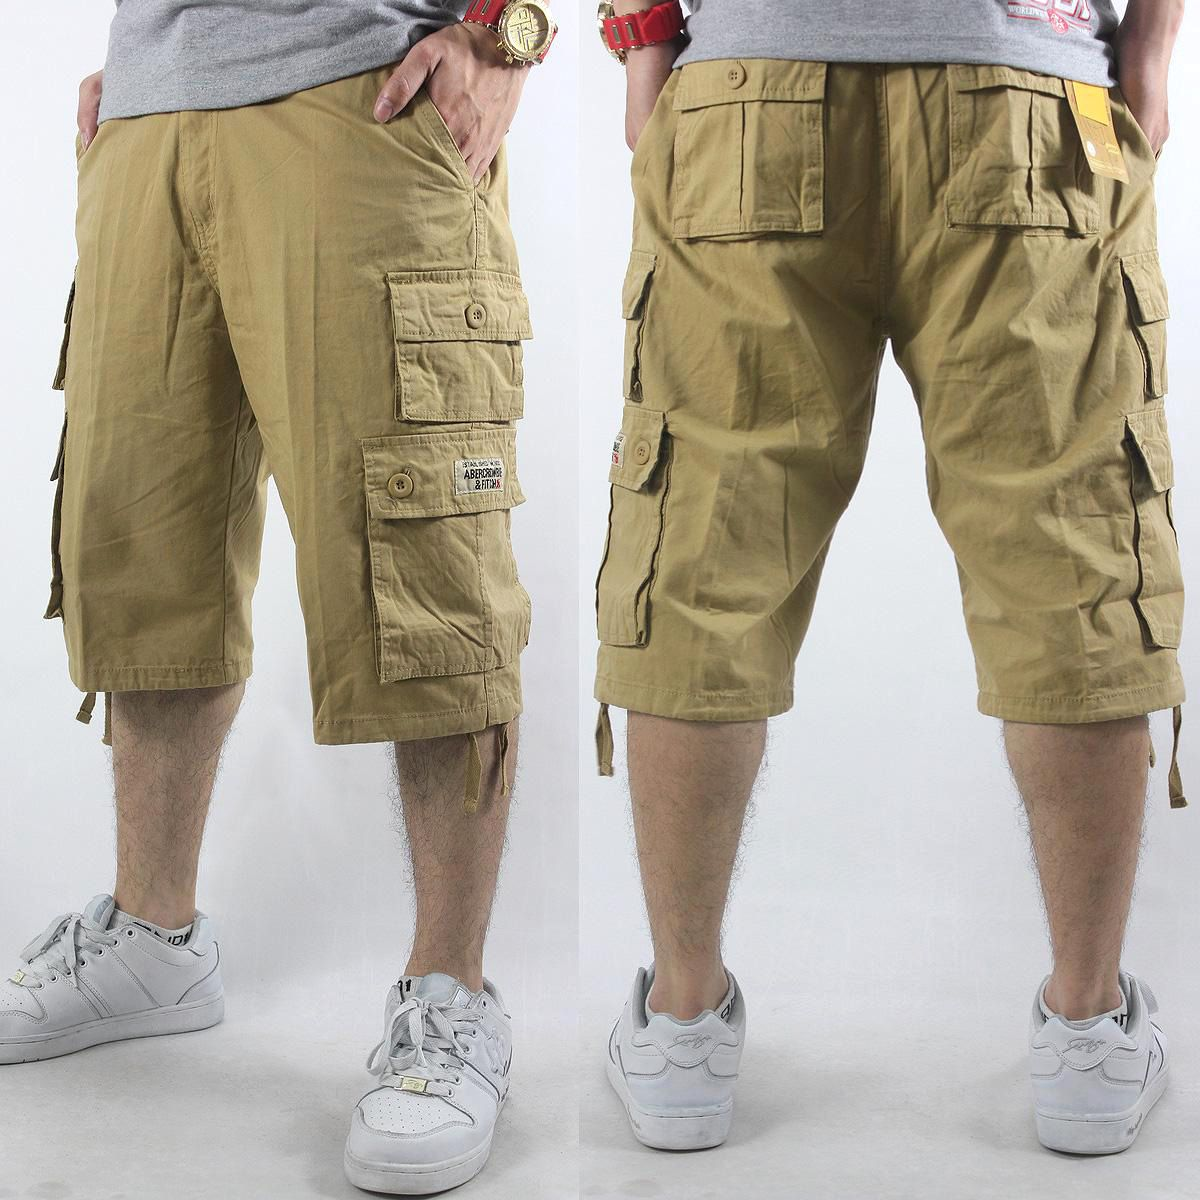 Best Mens Cargo Shorts Pictures | More Cargo short and Men's ...